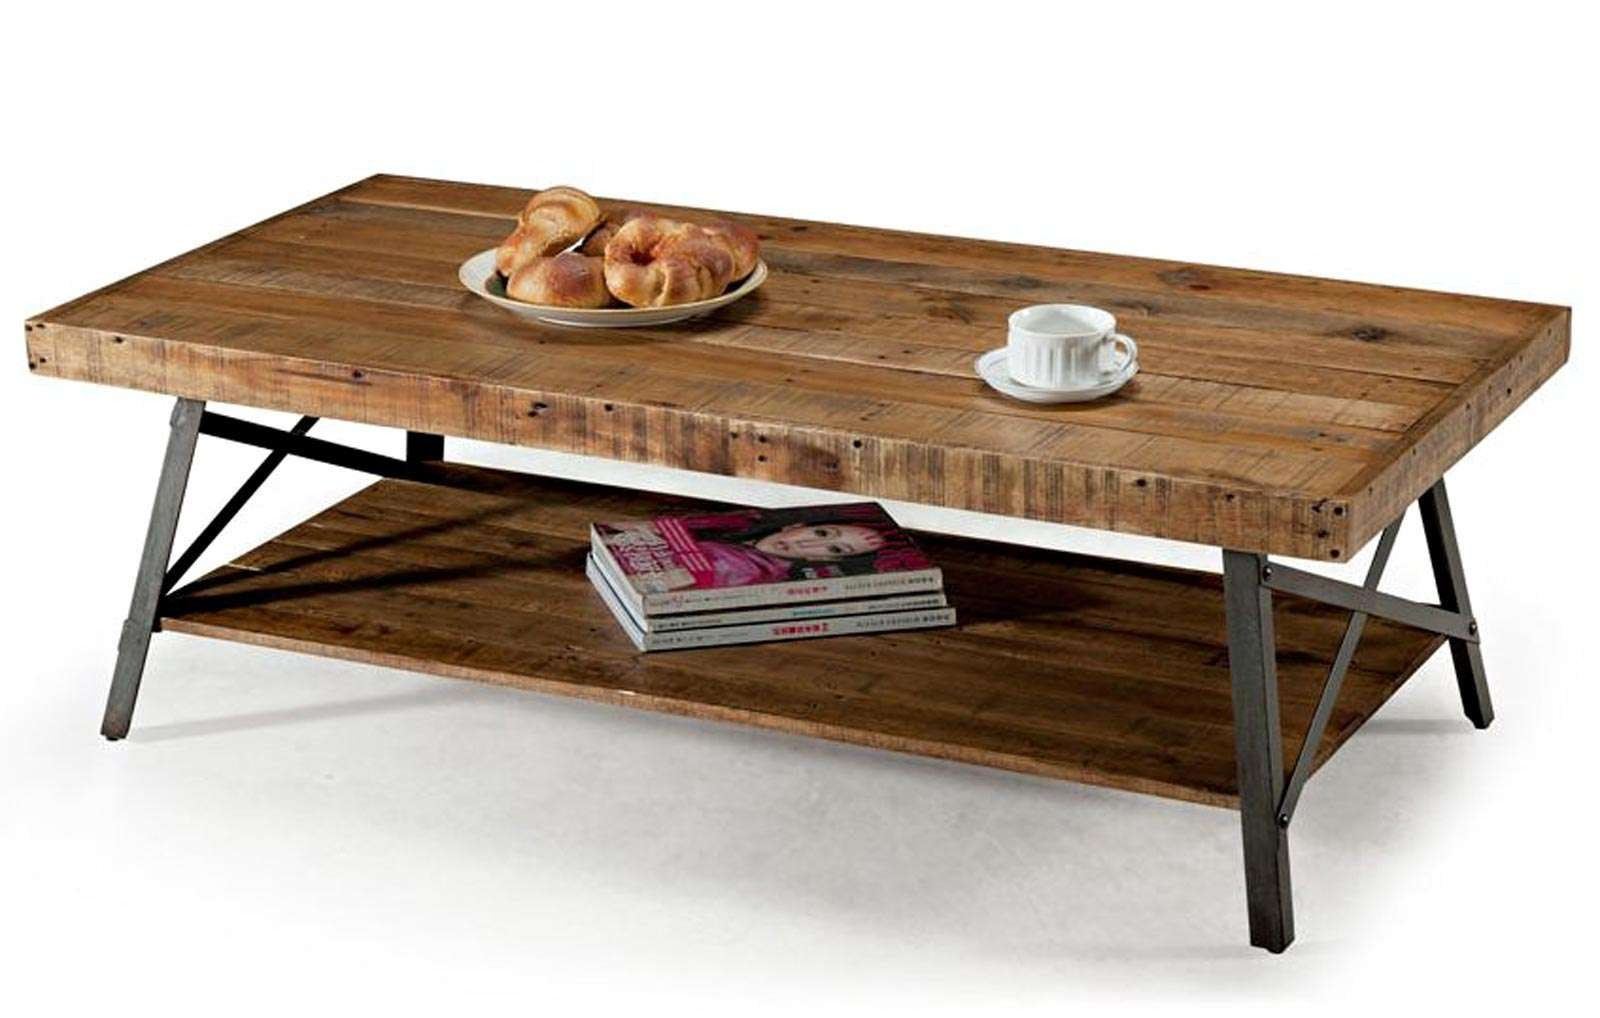 Coffee Tables Ideas: Rustic Wooden Coffee Table With Wheels Regarding Most Up To Date Rustic Wooden Coffee Tables (View 6 of 20)